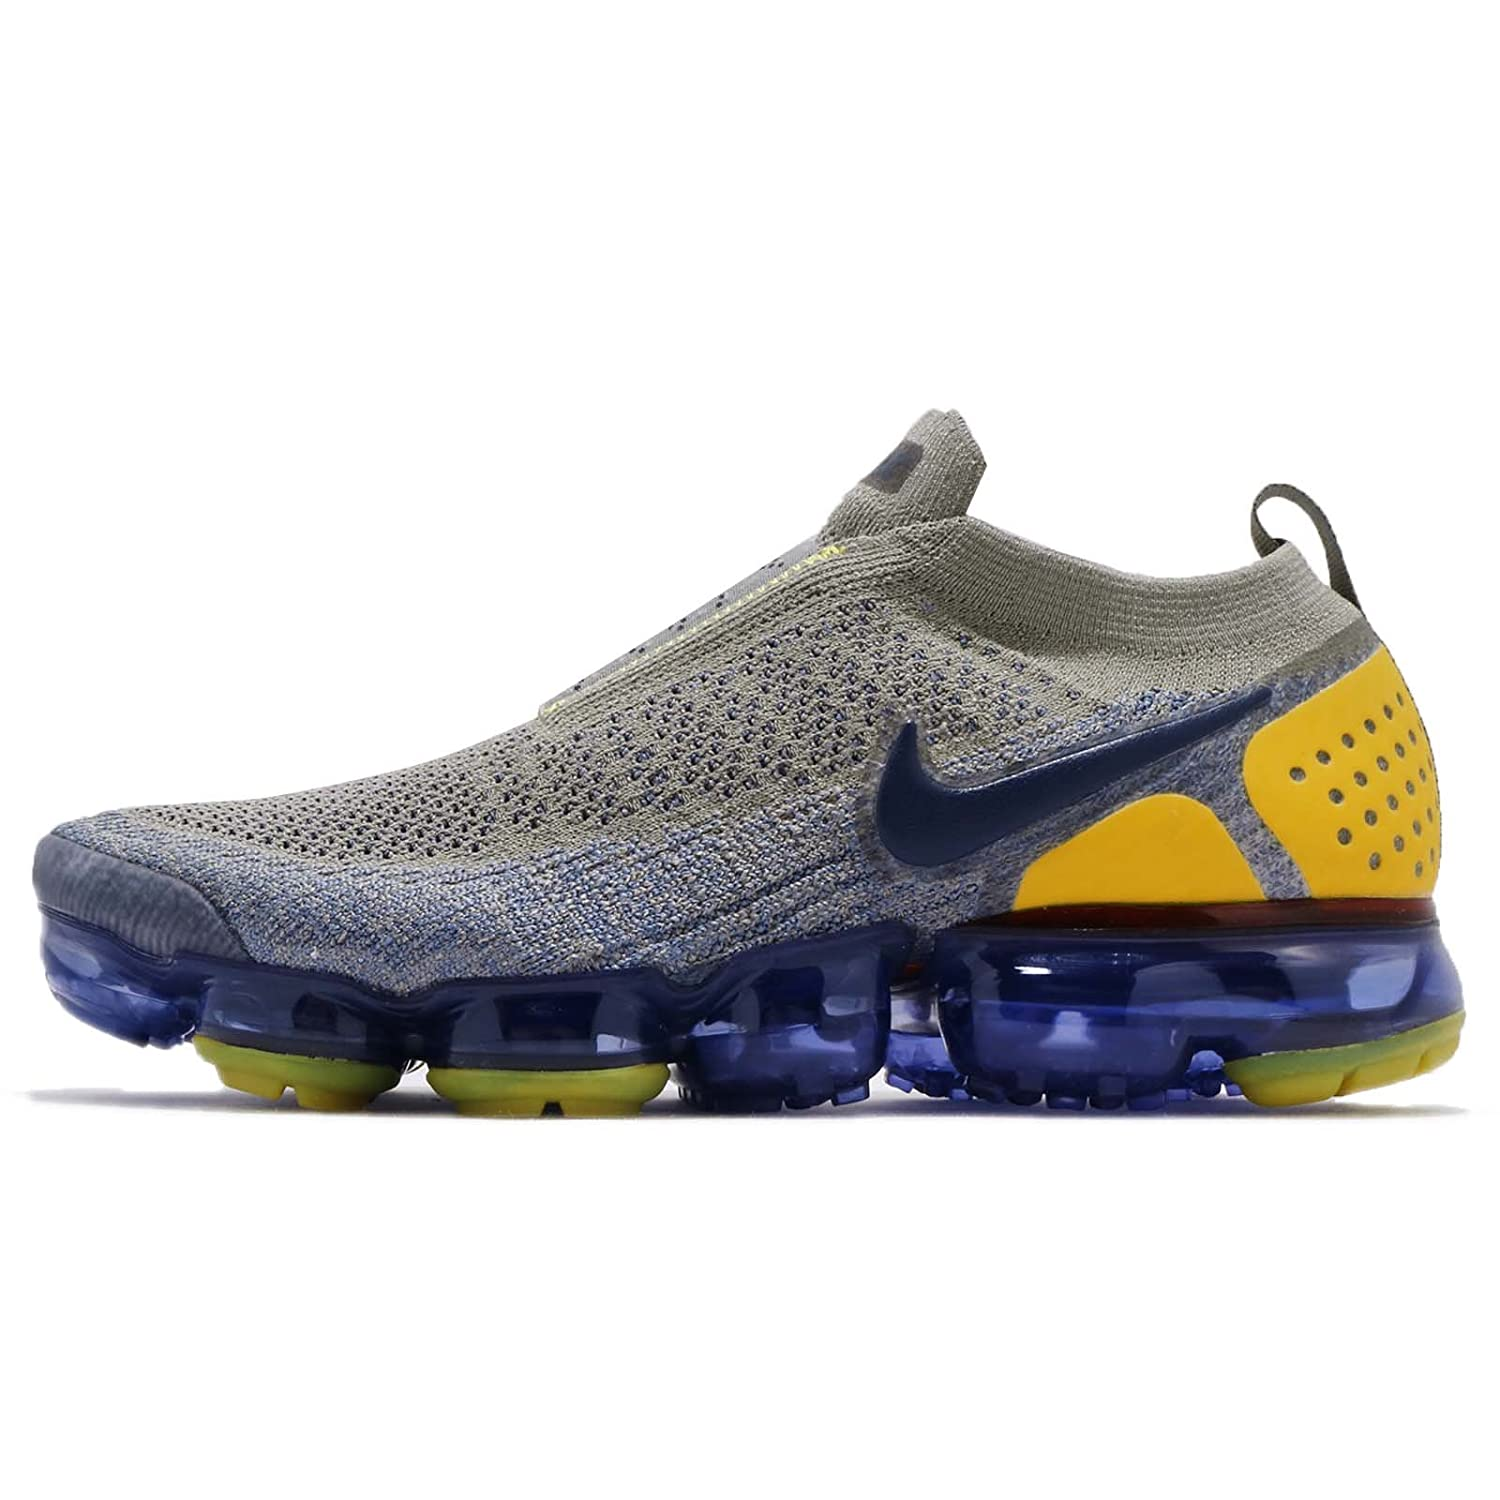 5f279433e175b Amazon.com | Nike Men's AIR Vapormax FK MOC 2, Dark Stucco/Midnight Navy,  10 M US | Running